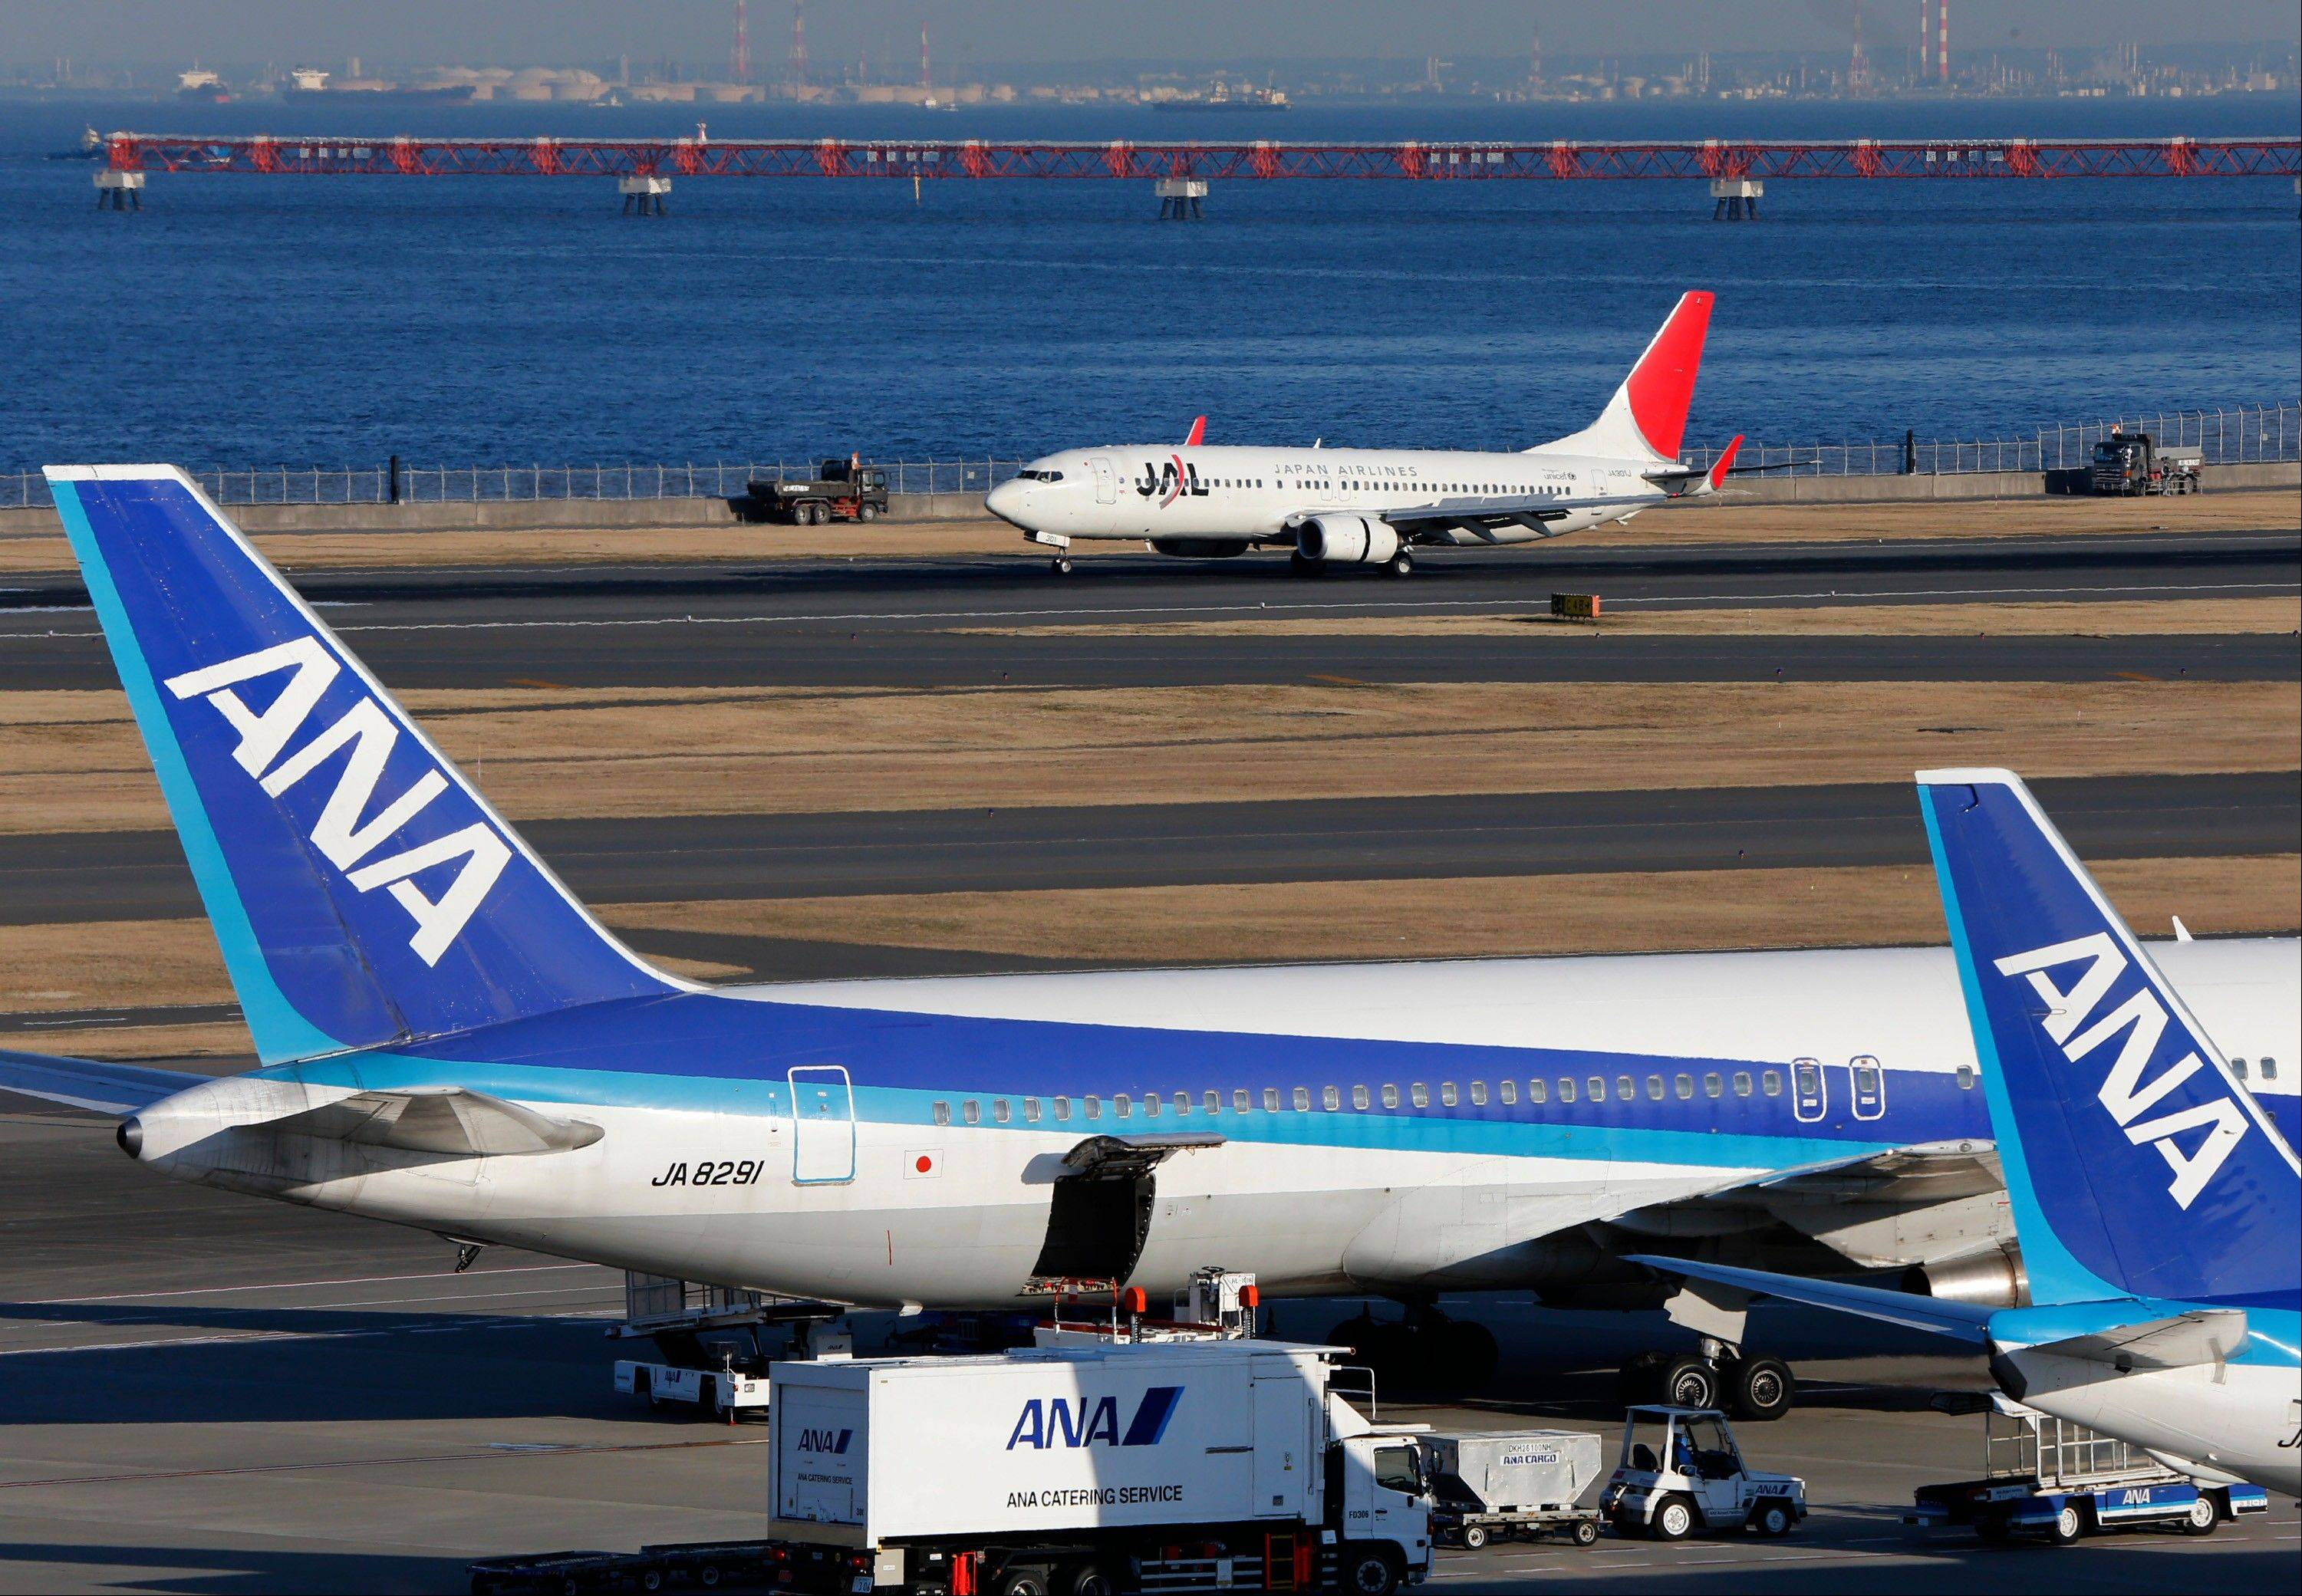 Japan's All Nippon Airways is prepared to recoup from Boeing whatever damages it suffers from flight cancellations and other costs caused by the worldwide grounding of 787 jets,